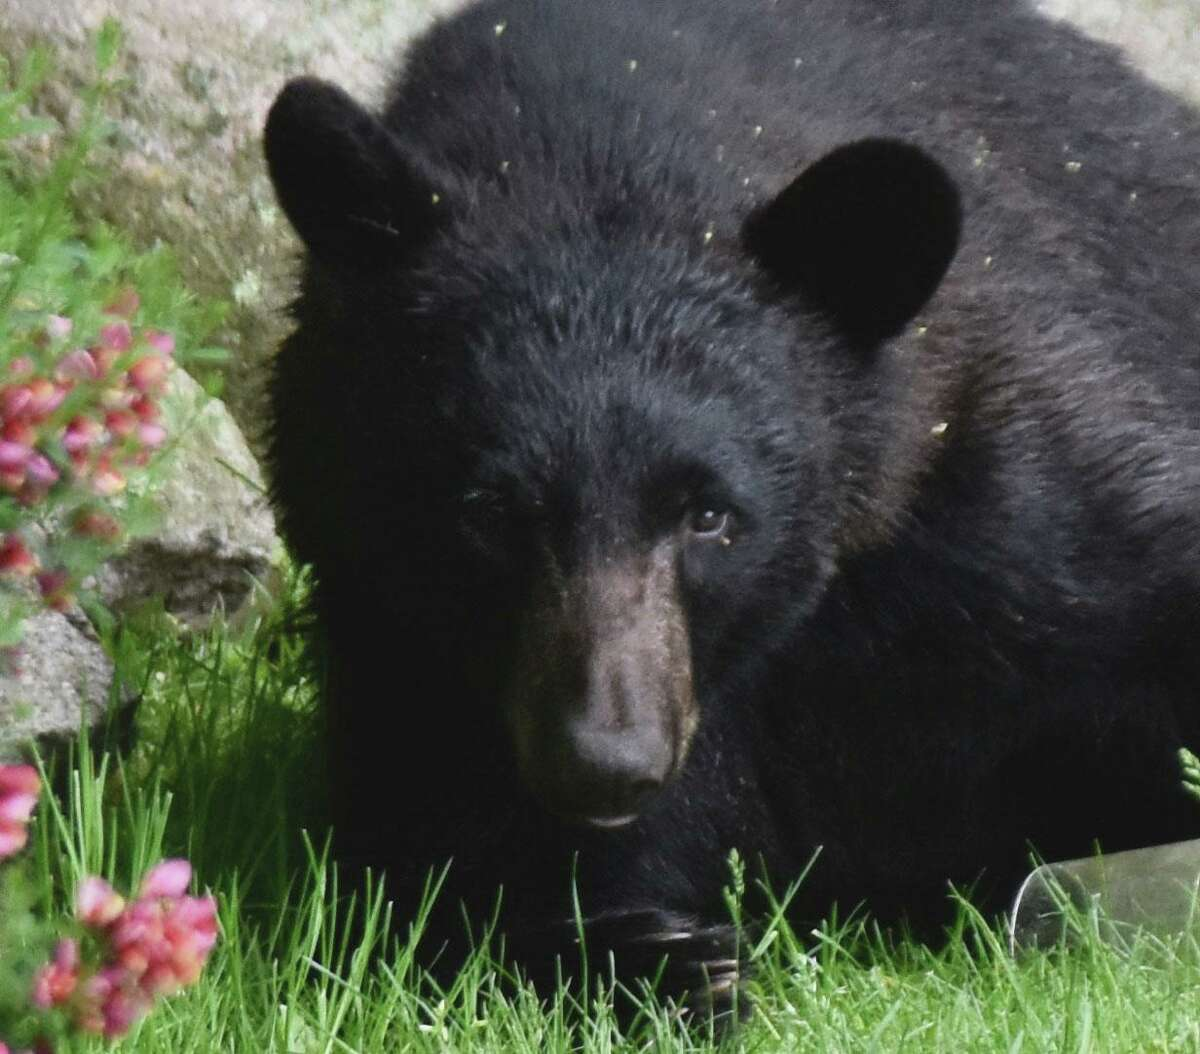 A black bear visits a Wilton, Conn., backyard near Cranbury Park in May 2019. DEEP has received more reports of bears entering homes than in any previous year - with 42 home entries reported this year through Sept. 10. Bears were reported to have entered 17 homes across Connecticut in all of 2019. These tips are important now more than ever as fall approaches and black bears increase their food intake to add fat reserves to make it through winter hibernation, DEEP warns. Officials said bears that eat human-associated foods, including birdseed, trash and pet food, on a regular basis become comfortable around people and associate humans with food, creating a dangerous situation for the animal and the humans. Jenny Dickson, director of the Wildlife Division, said bears should never be fed, intentionally or unintentionally.